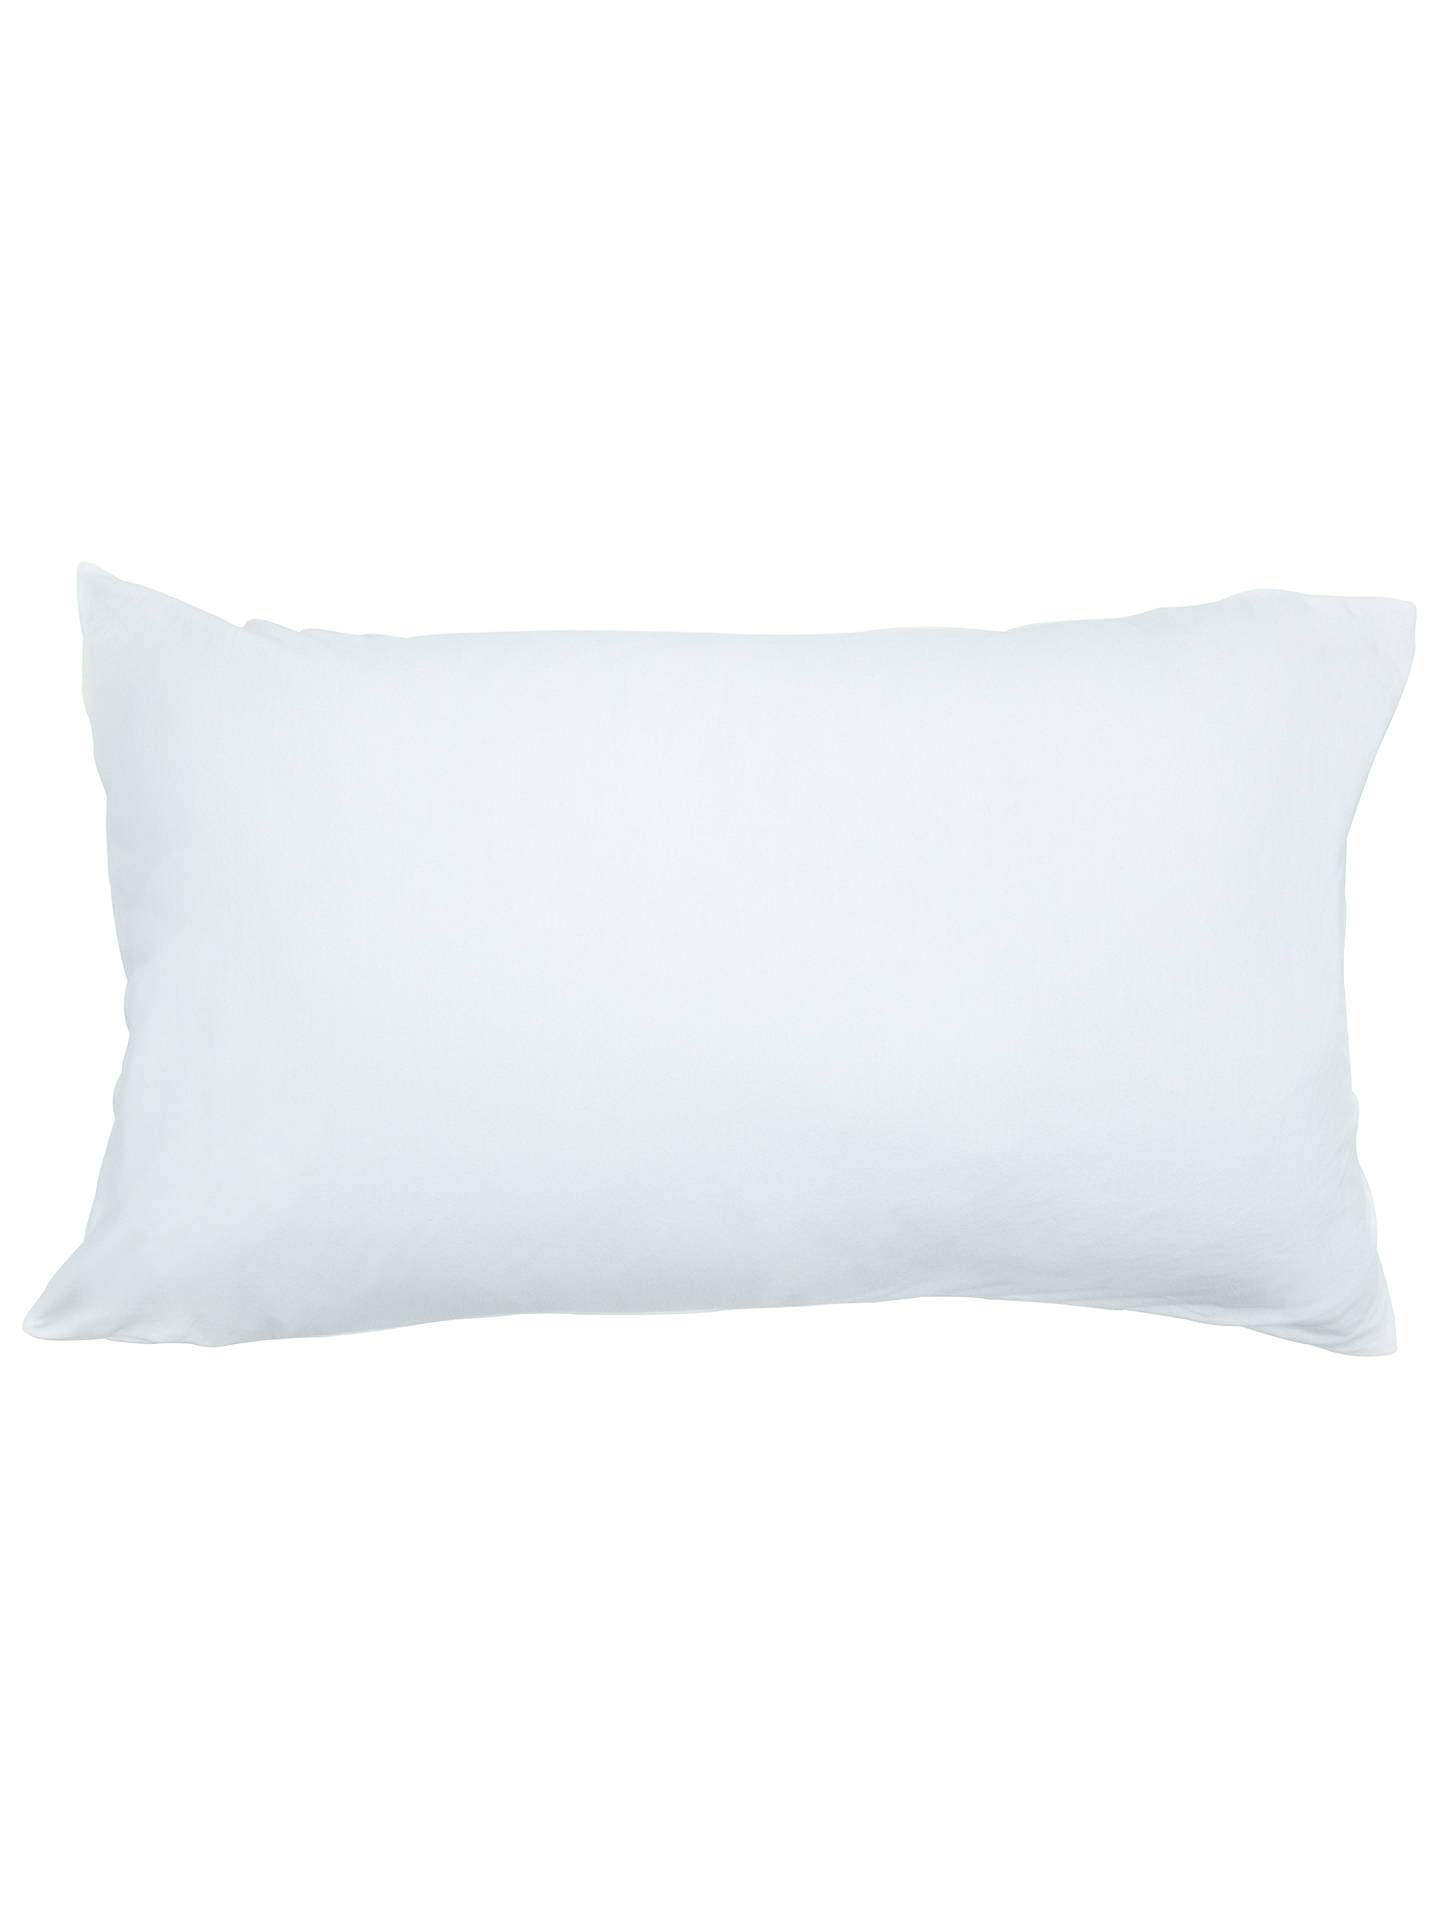 BuyJohn Lewis & Partners Micro-Fresh Anti Allergy Pillow Protector Online at johnlewis.com